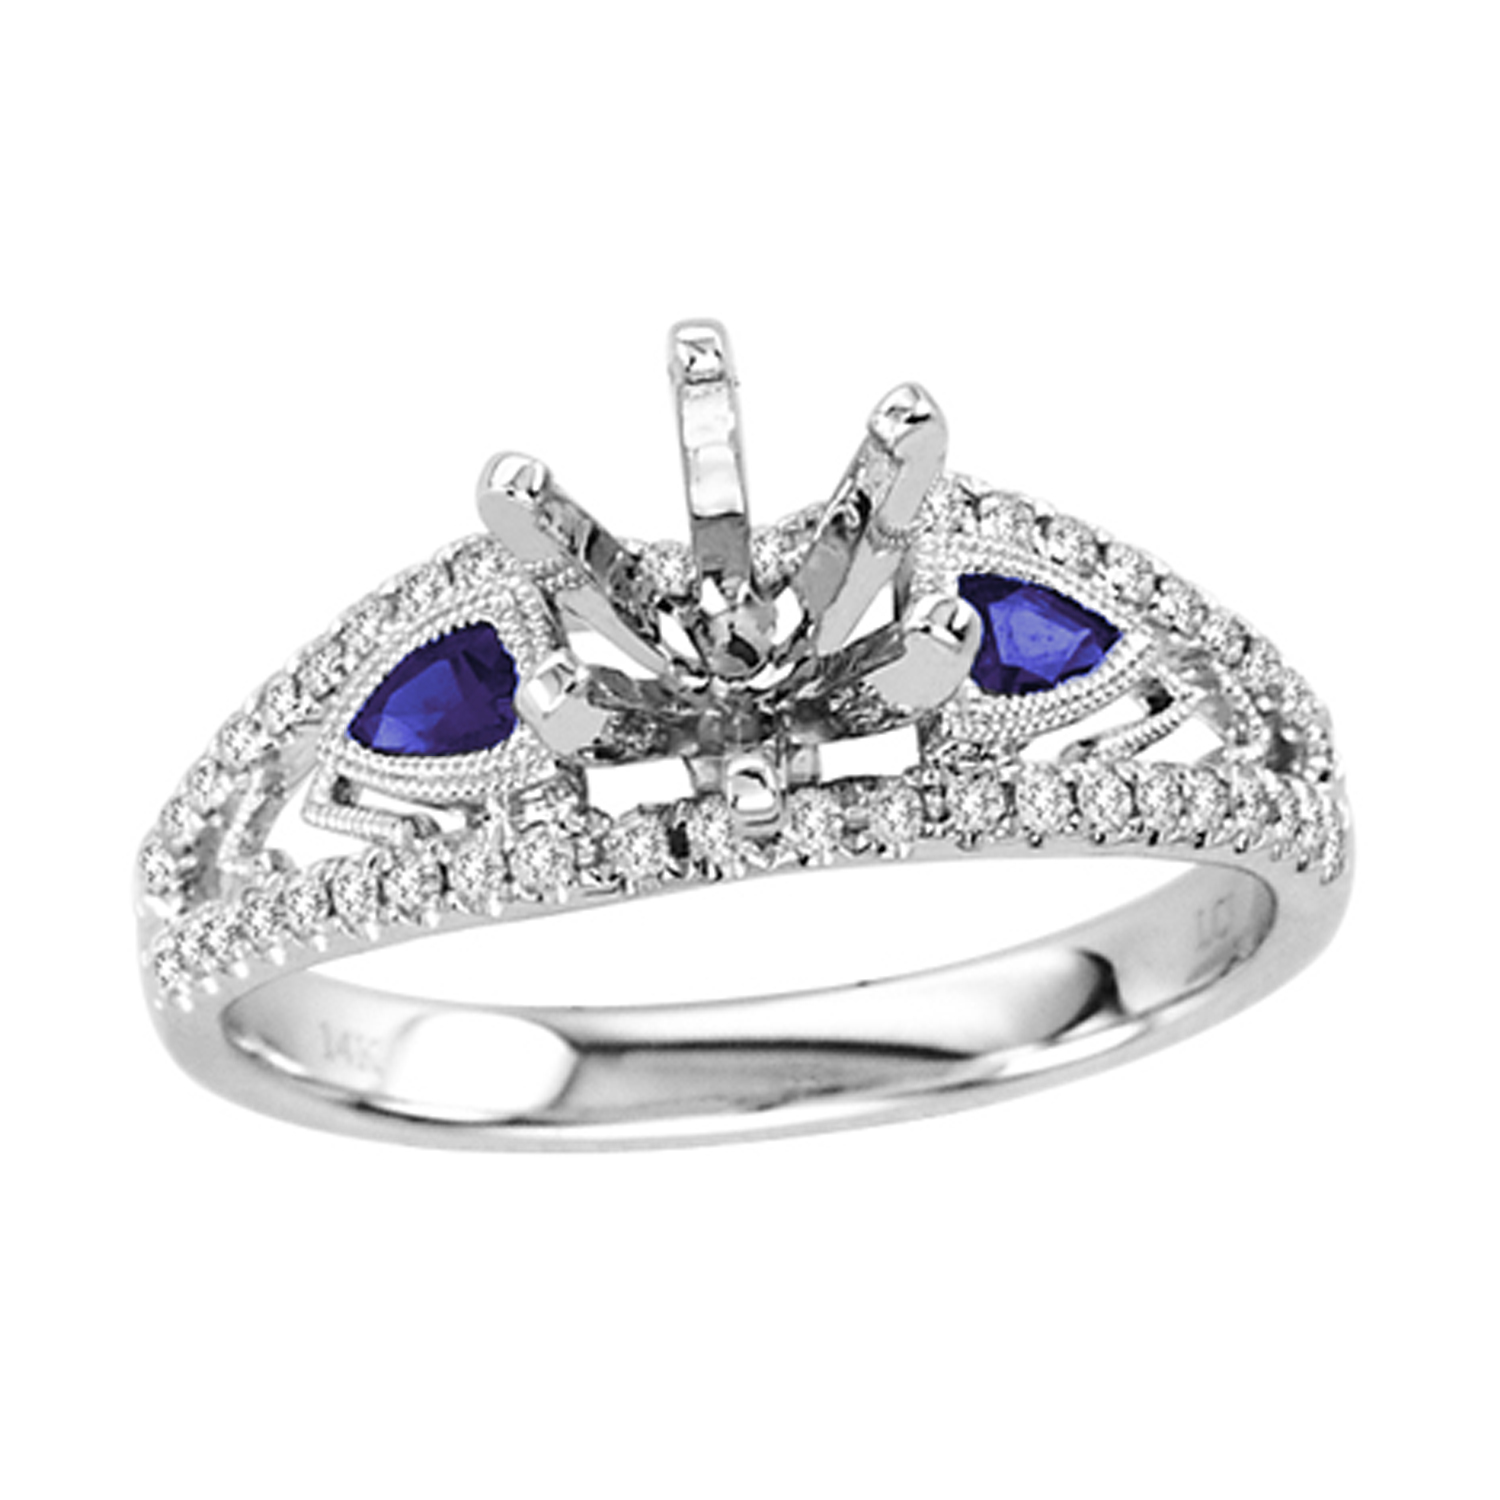 View 0.43cttw Sapphire and Diamond Semi Mount Engagement Ring set in 14k Gold